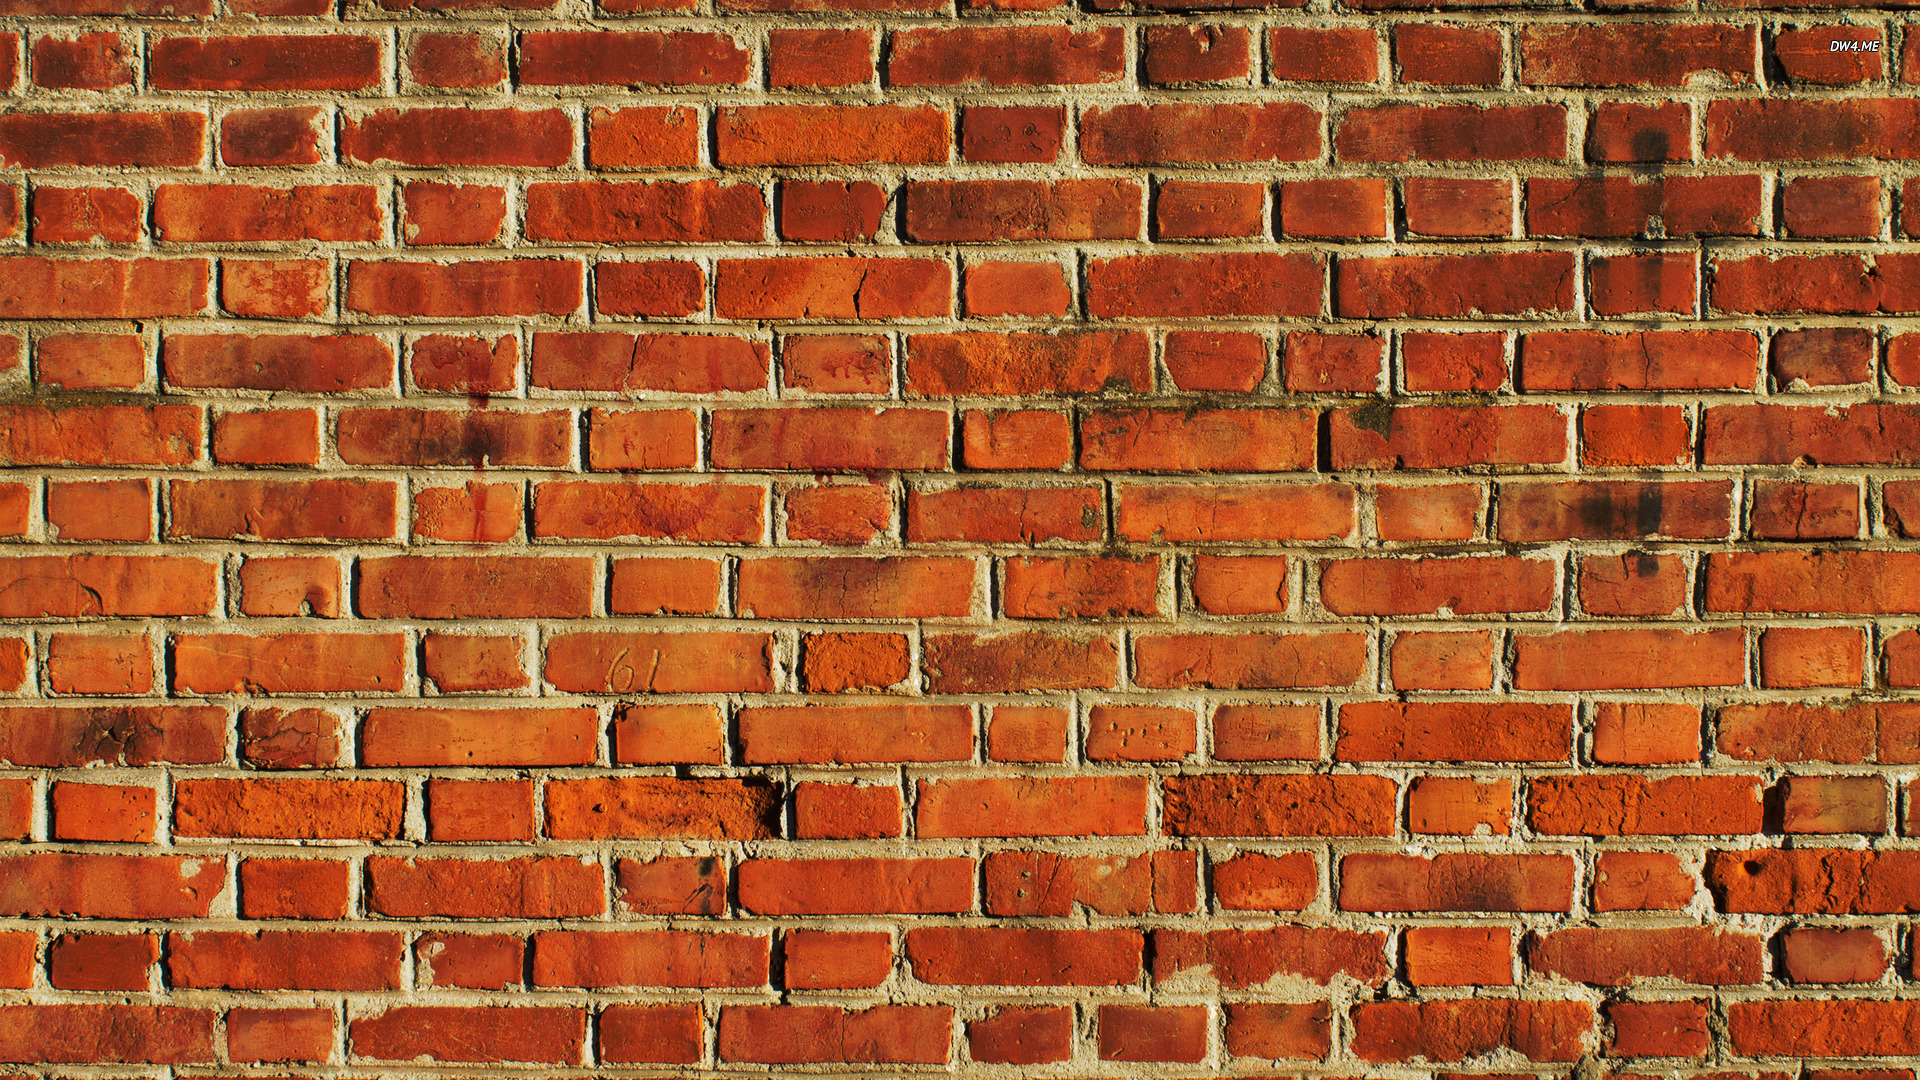 Wallpaper Brick